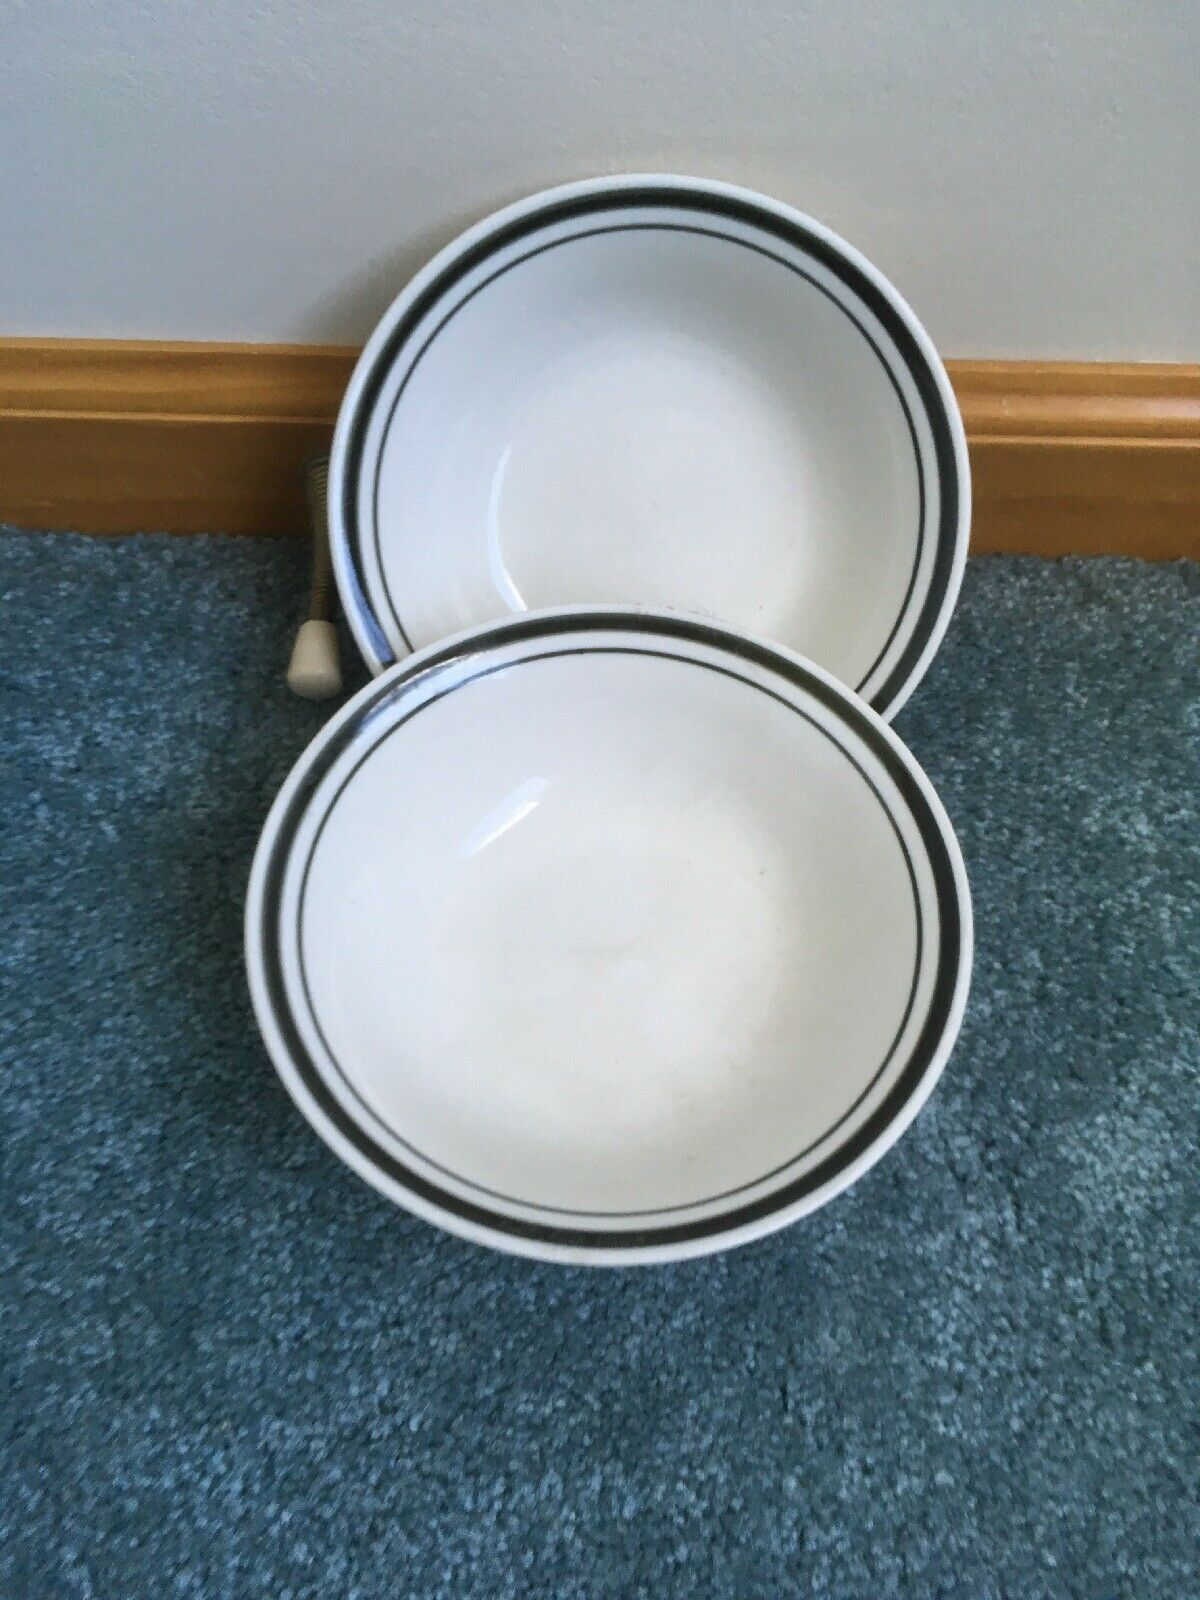 """GIBSON SOUP OR CEREAL BOWL WHITE WITH BLACK RINGS 6 3/8"""" SET OF 2 - $11.75"""